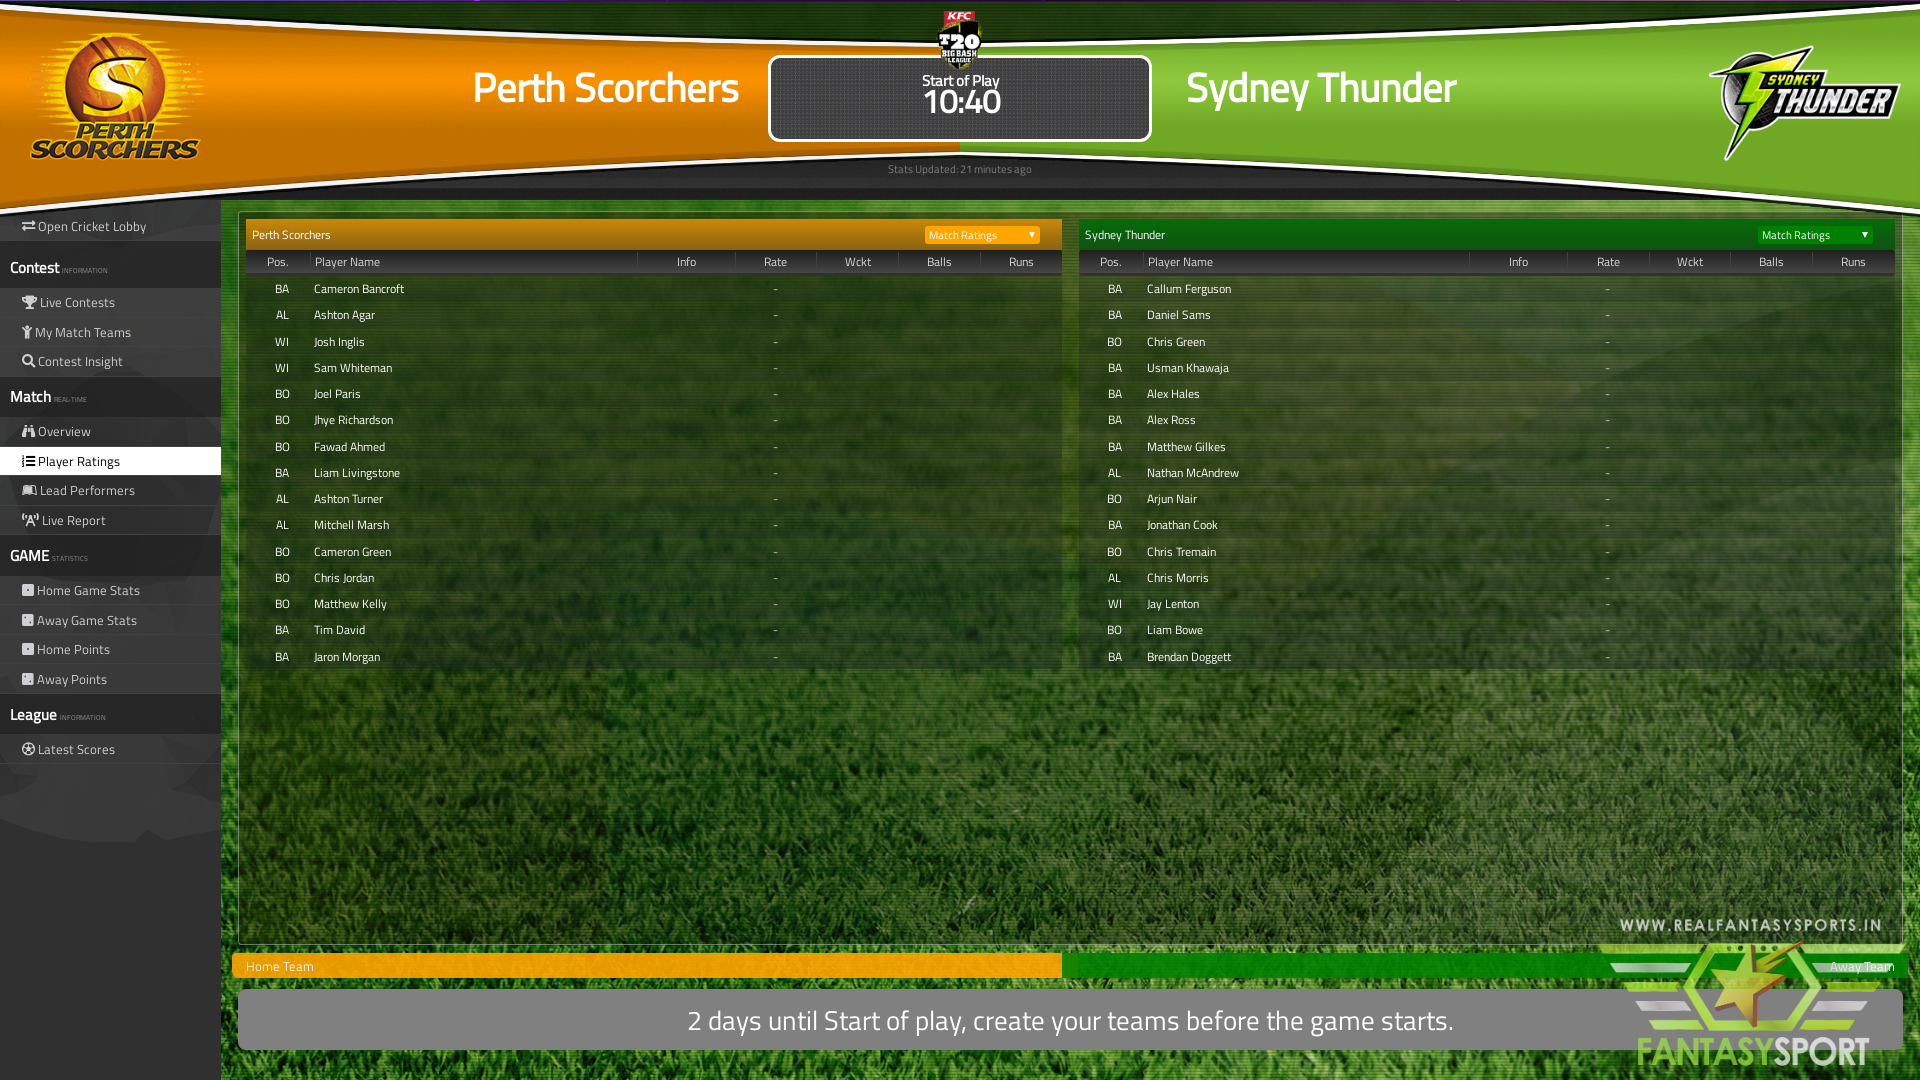 Perth Scorchers vs Sydney Thunder match preview (20th January 2020)